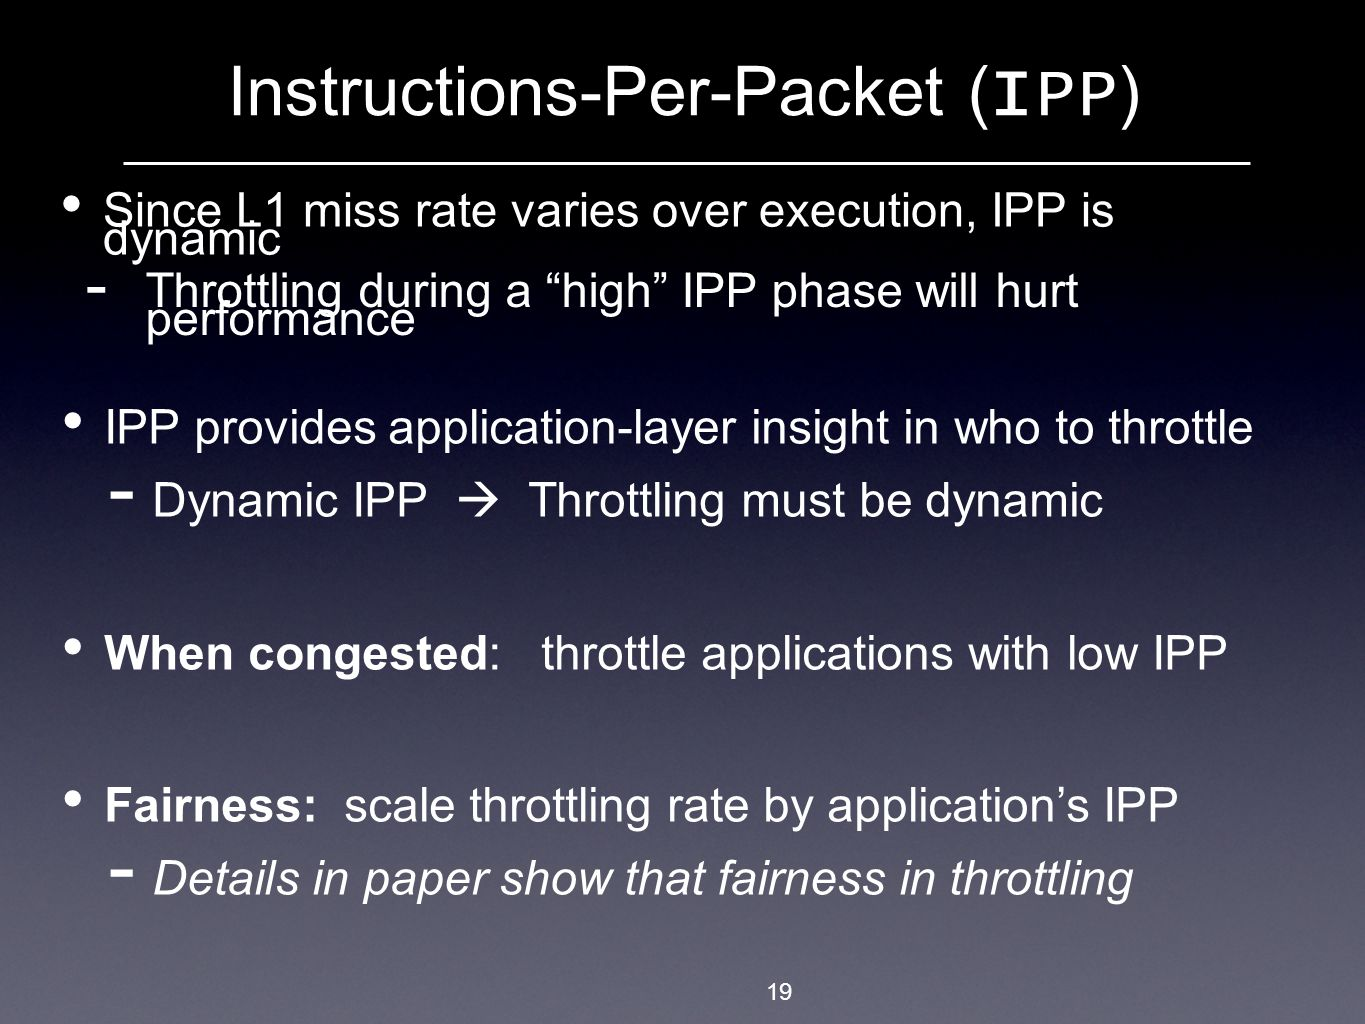 Since L1 miss rate varies over execution, IPP is dynamic 19 Instructions-Per-Packet ( IPP )  Throttling during a high IPP phase will hurt performance IPP provides application-layer insight in who to throttle  Dynamic IPP  Throttling must be dynamic When congested: throttle applications with low IPP Fairness: scale throttling rate by application's IPP  Details in paper show that fairness in throttling